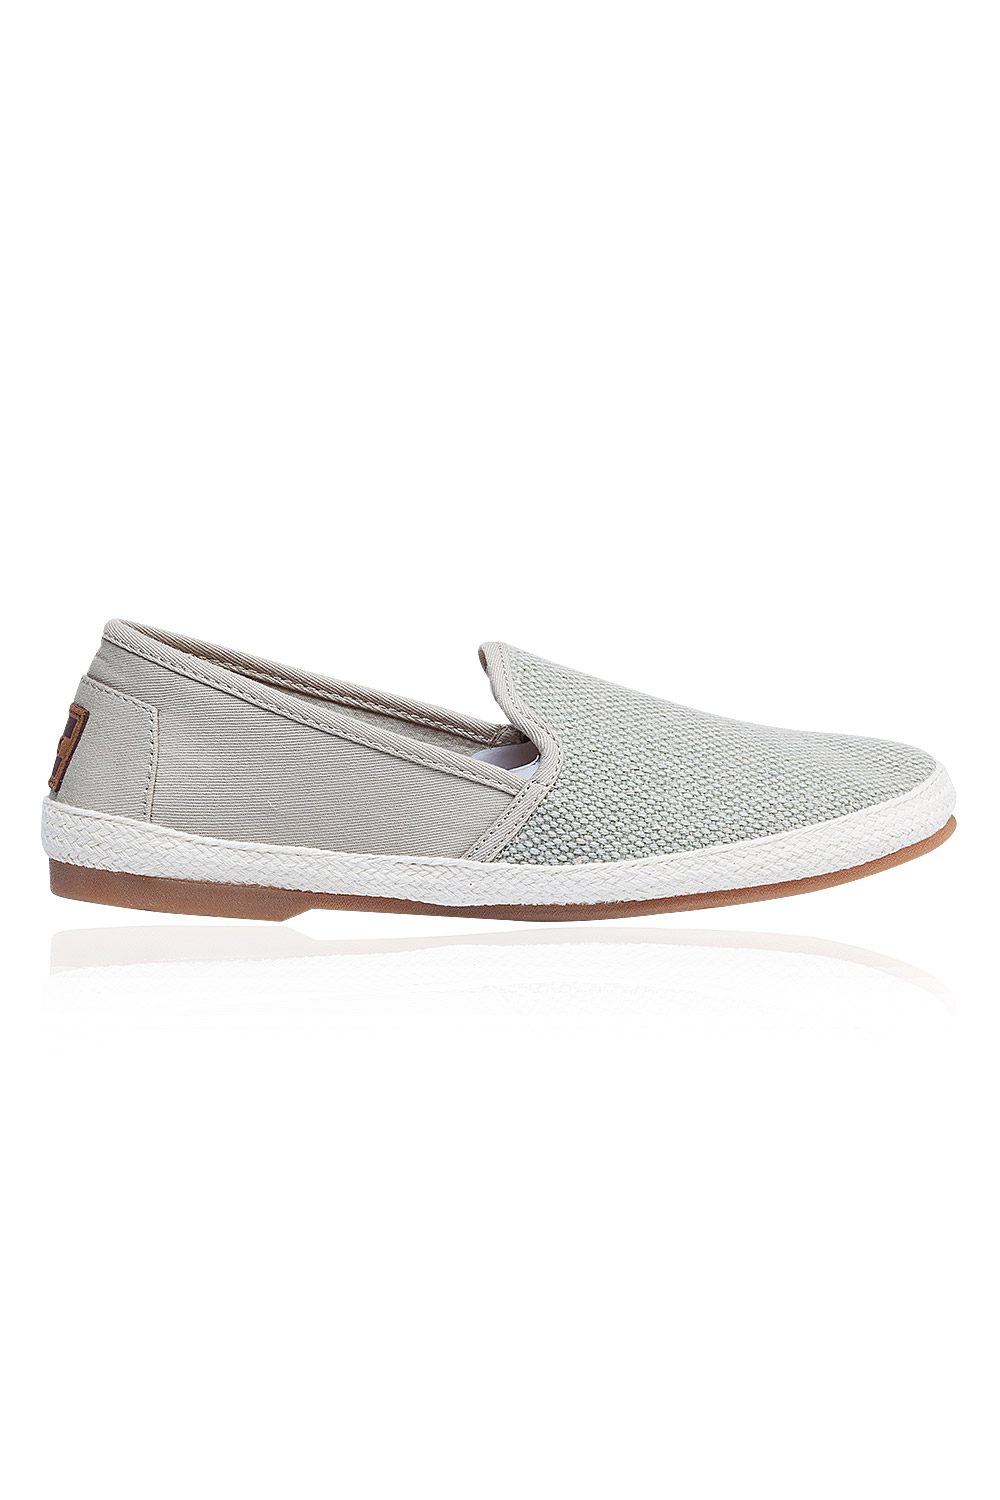 Agate Canvas Textured Espadril